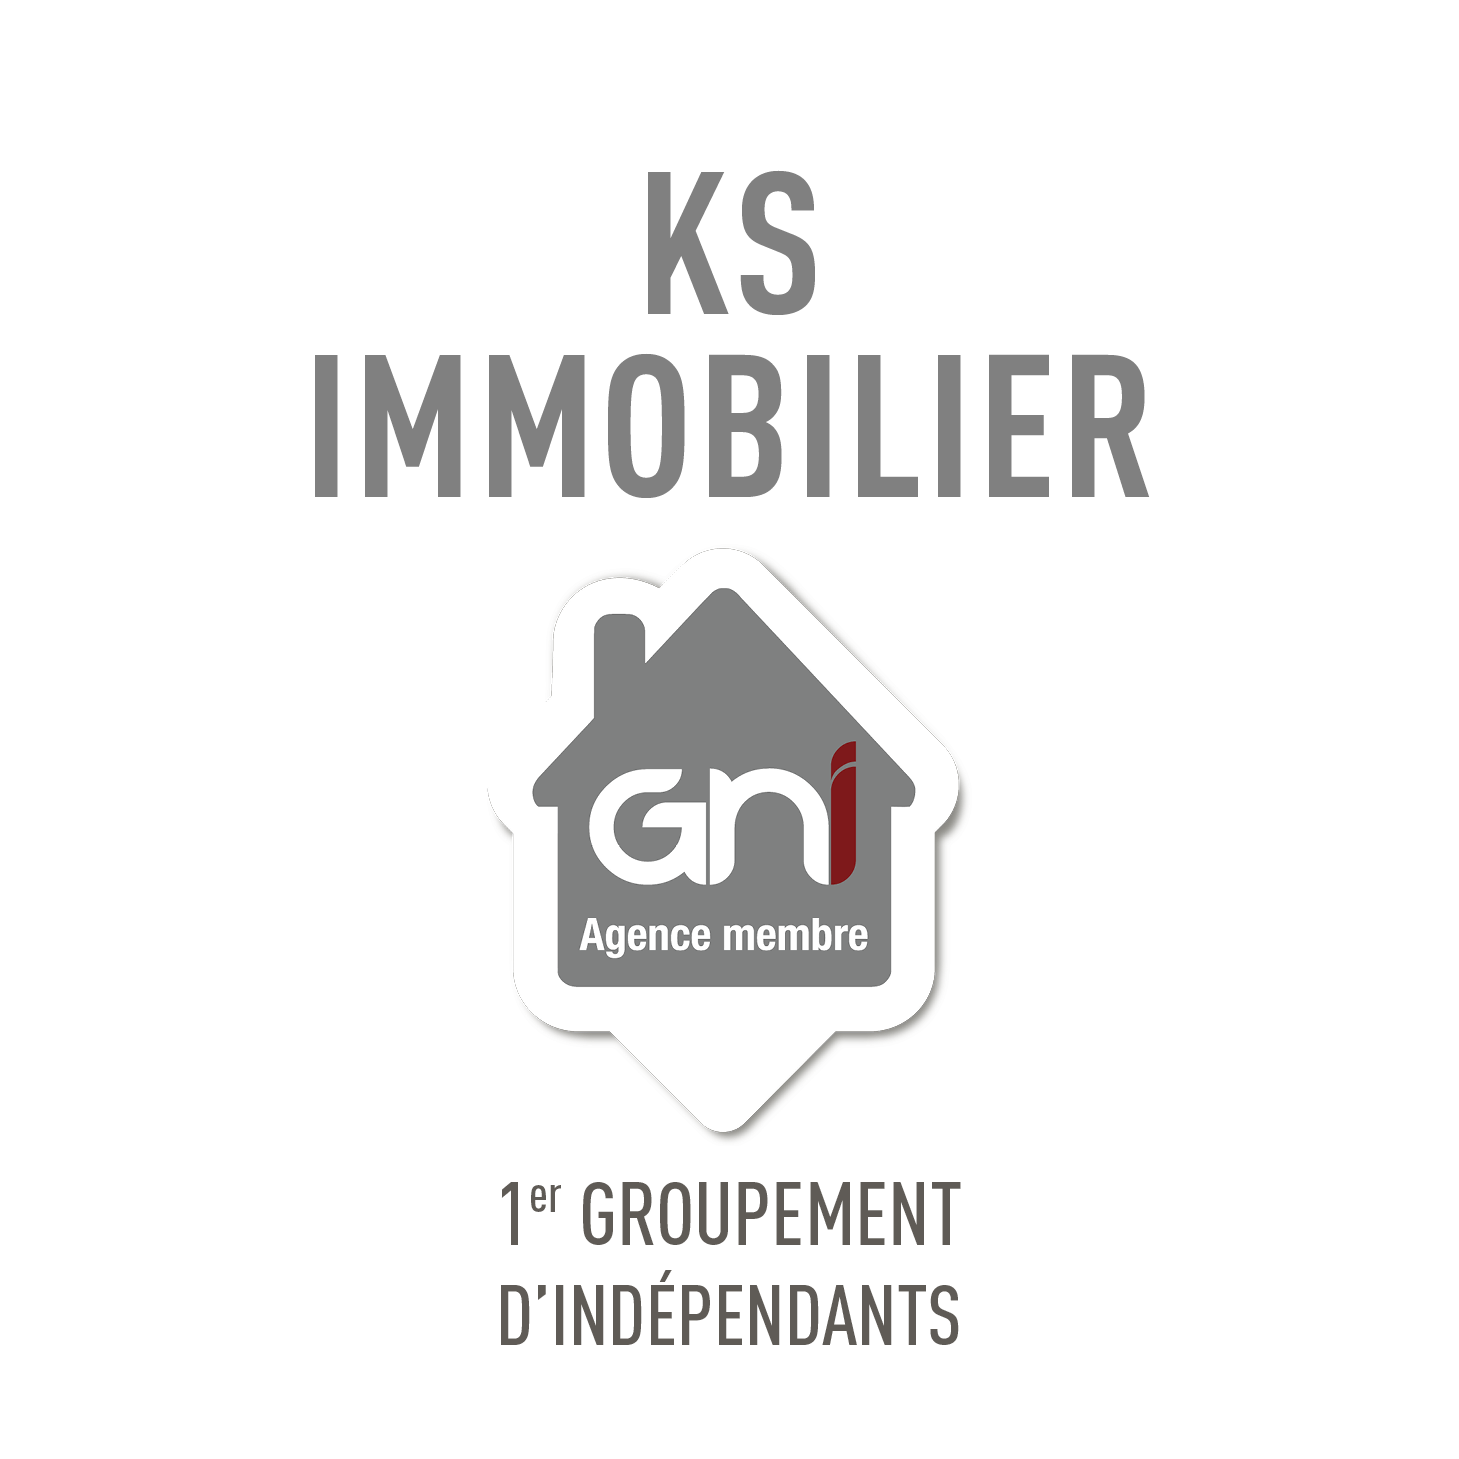 GNIMMO - KS IMMOBILIER